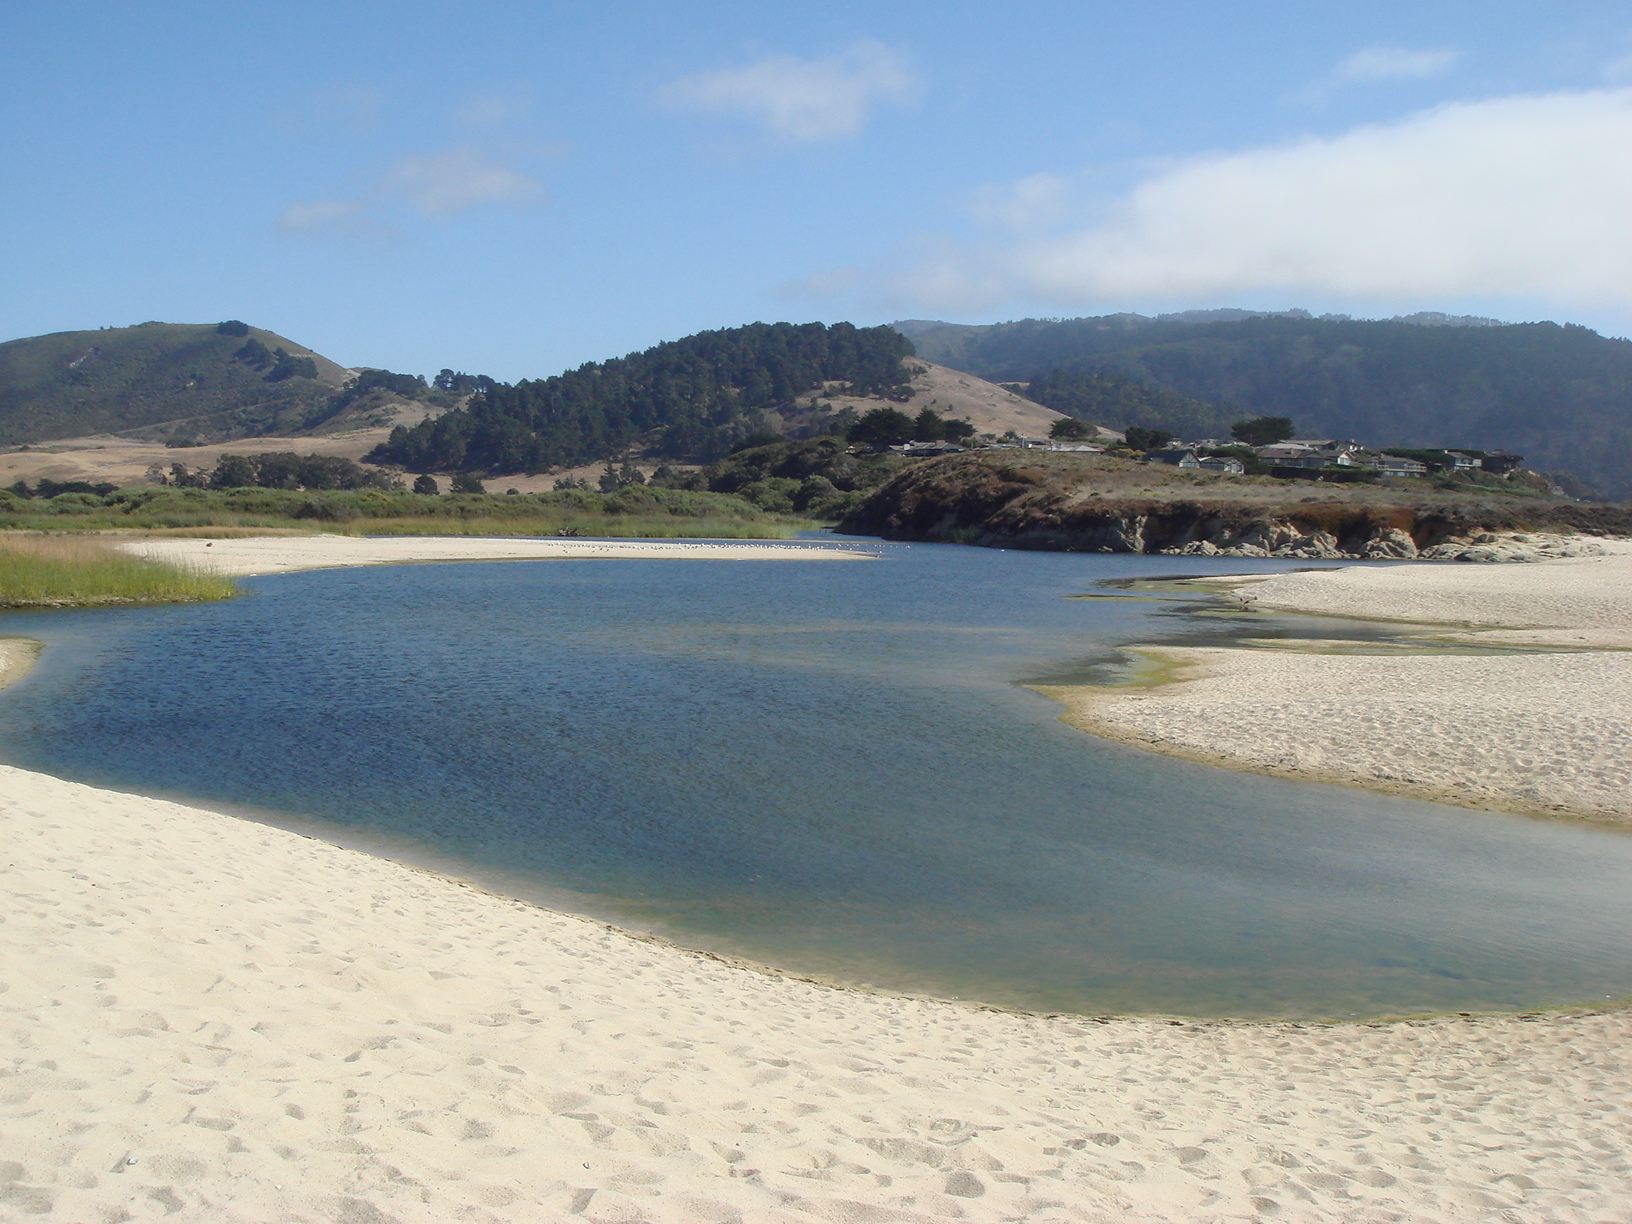 Wetlands, like this marsh in California's Carmel-by-Sea, can help filter disease-causing pathogens from humans and animals before they flow to the ocean. Photo: Karen Shapiro/UC Davis